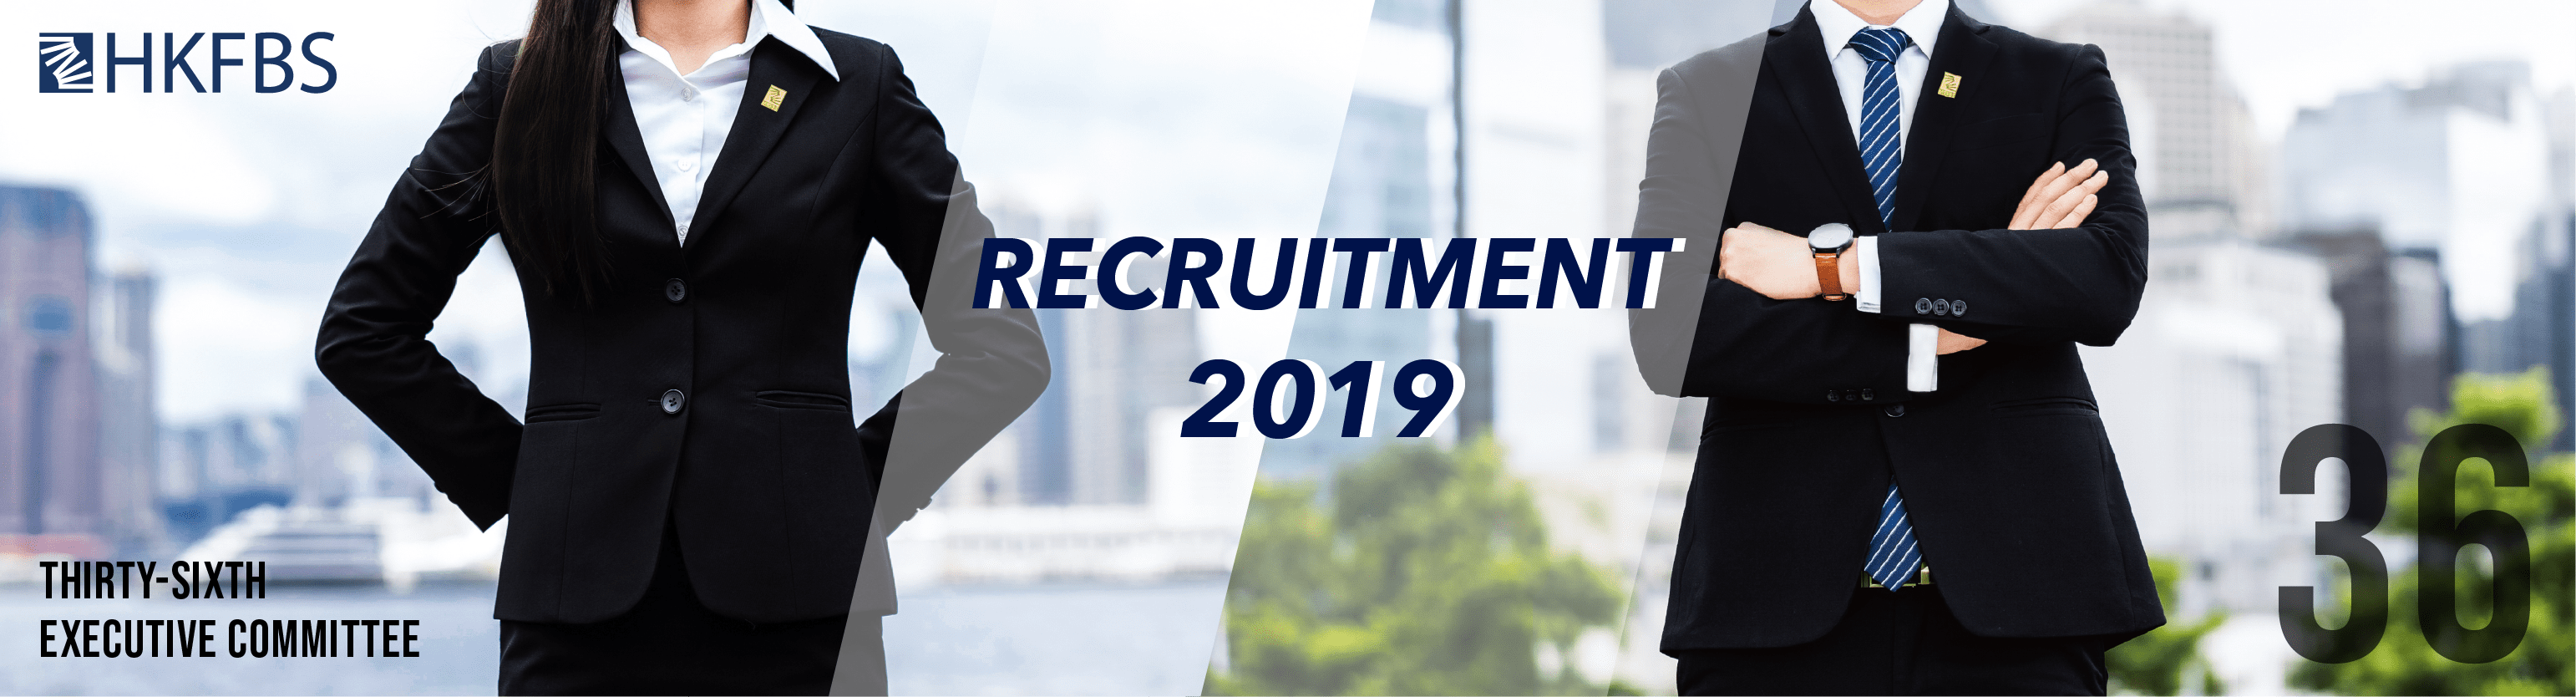 Recruitment 2019